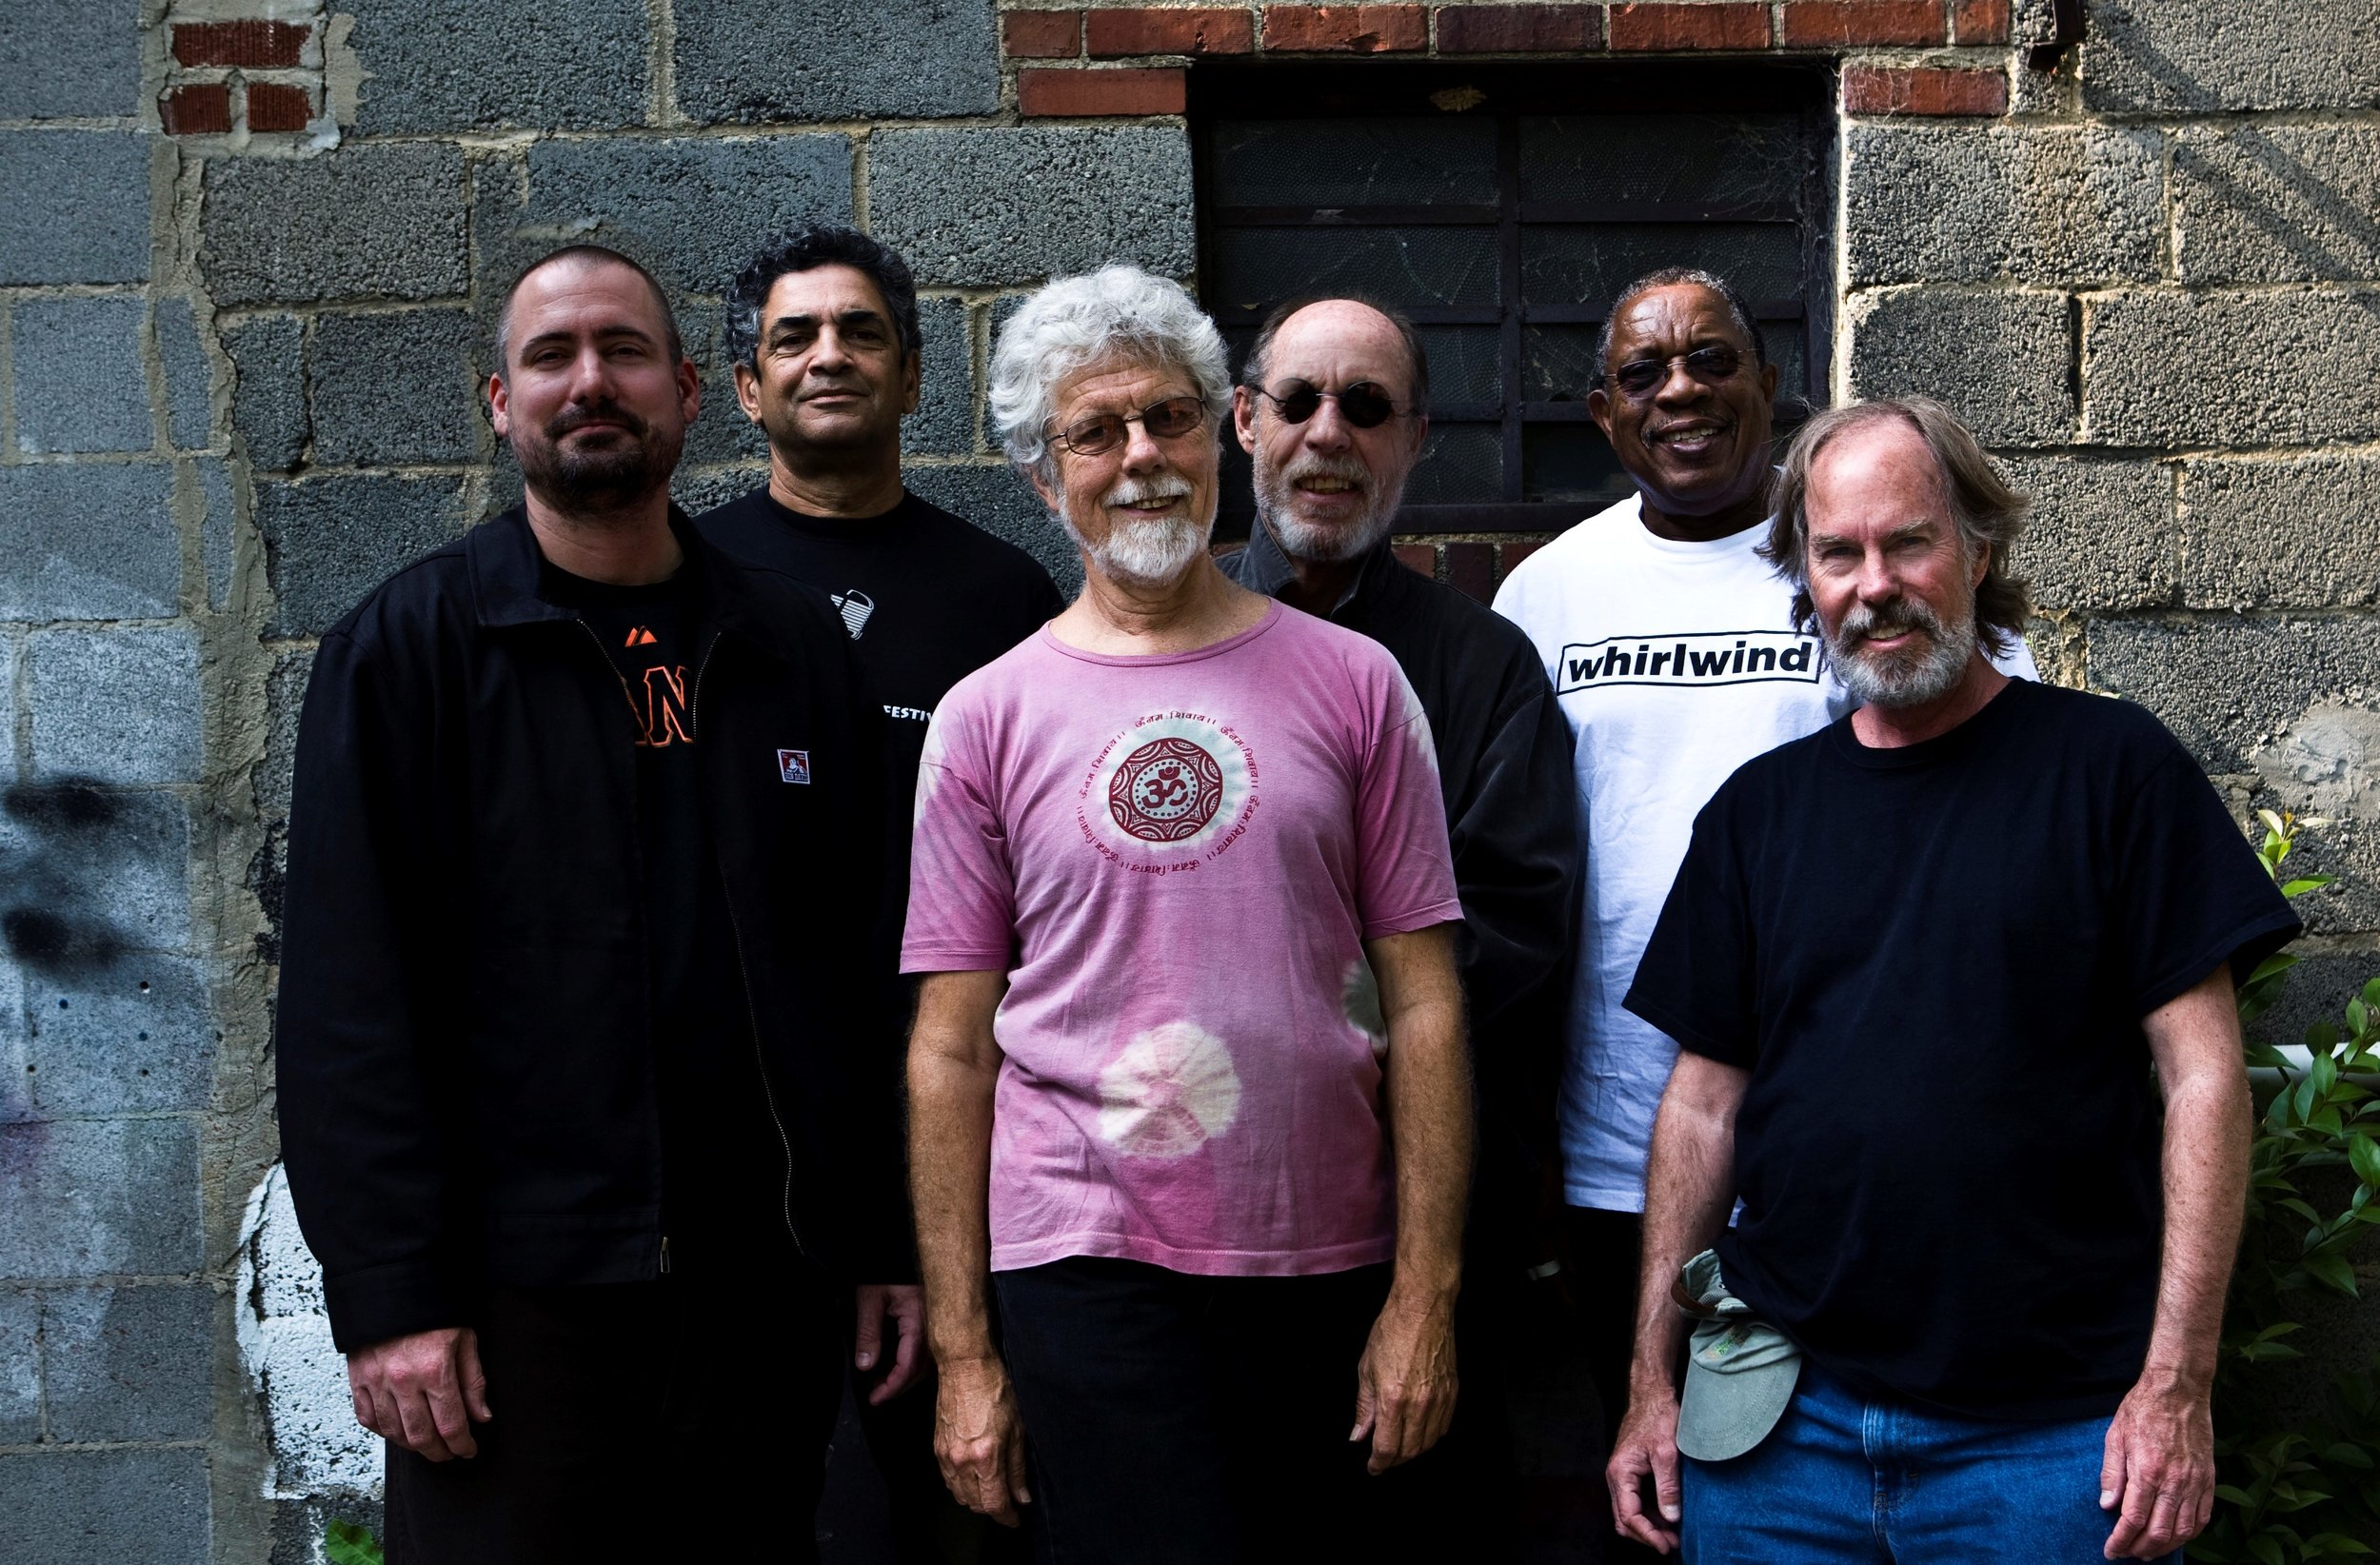 UPCOMING: Little Feat's 50 with Bill Payne